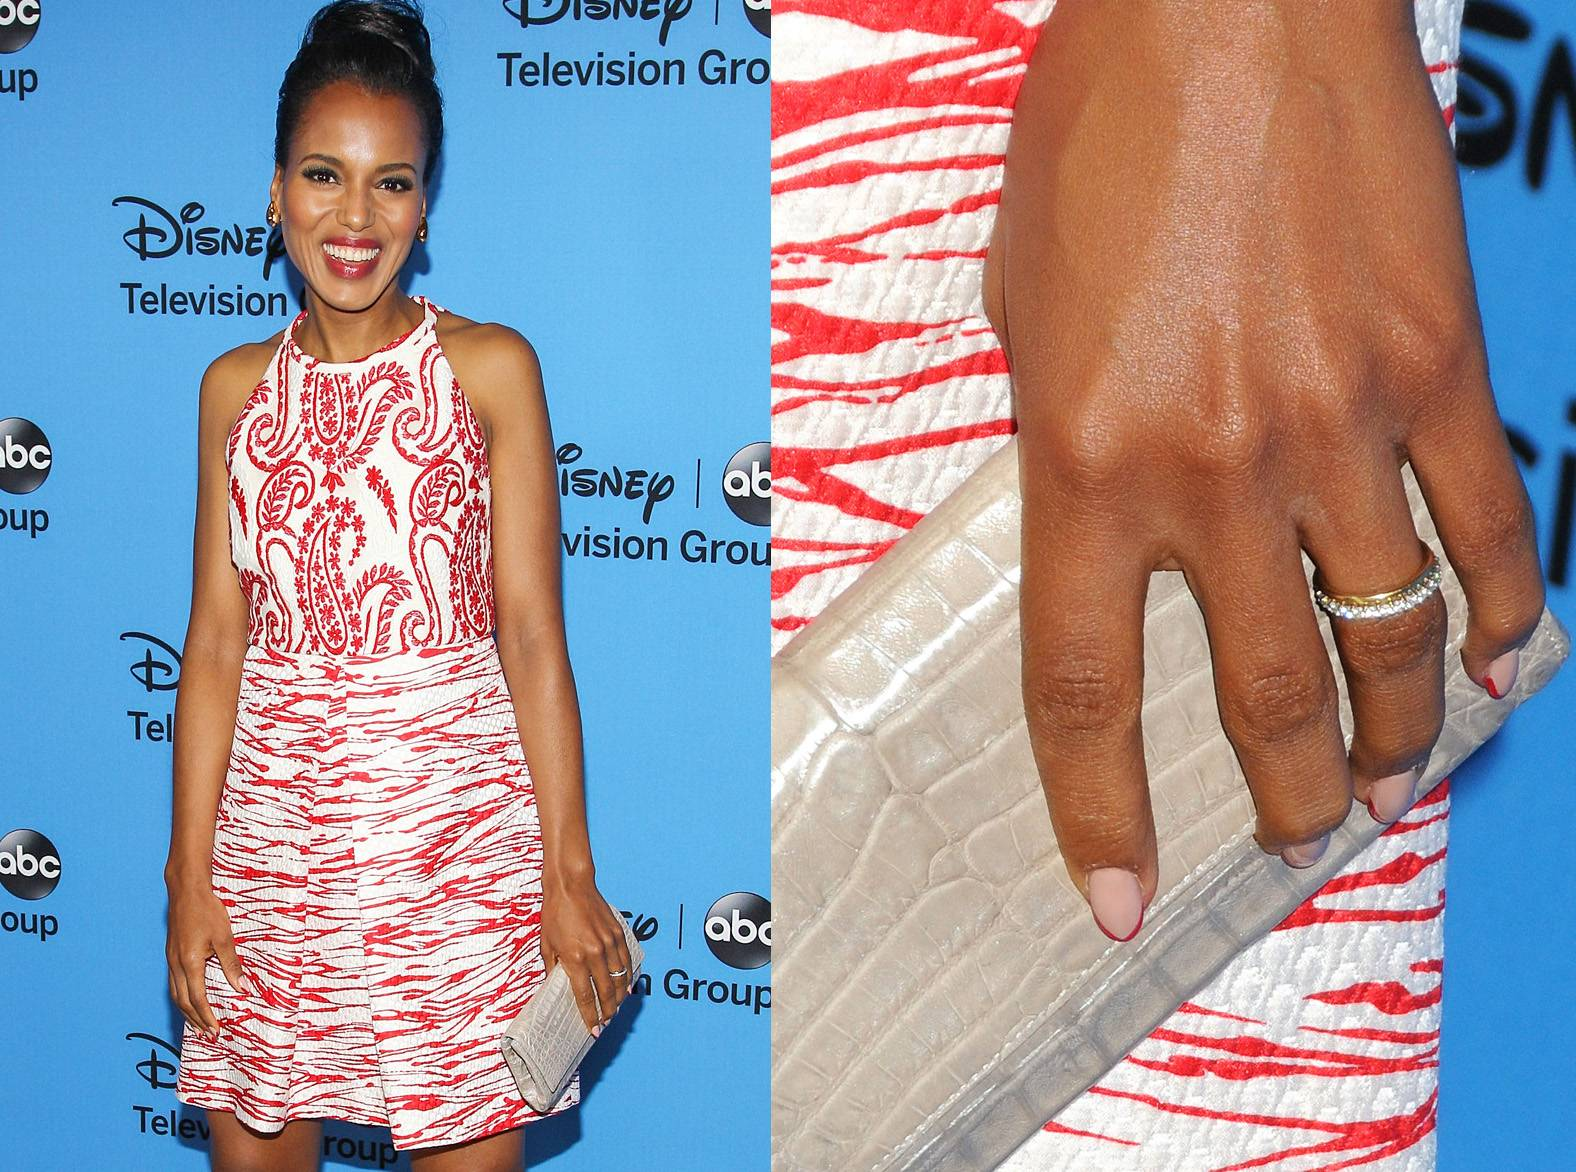 Kerry Washington - The Scandal star married San Francisco 49ers cornerback Nnamdi Asomugh in a secret ceremony on June 24, 2013. Keeping with her timeless style, Kerry's ring looks to be channel set with diamonds all around and is worn alongside a simple gold band.  (Photos from left: Paul A. Hebert/Getty Images, AdMedia / Splash News)